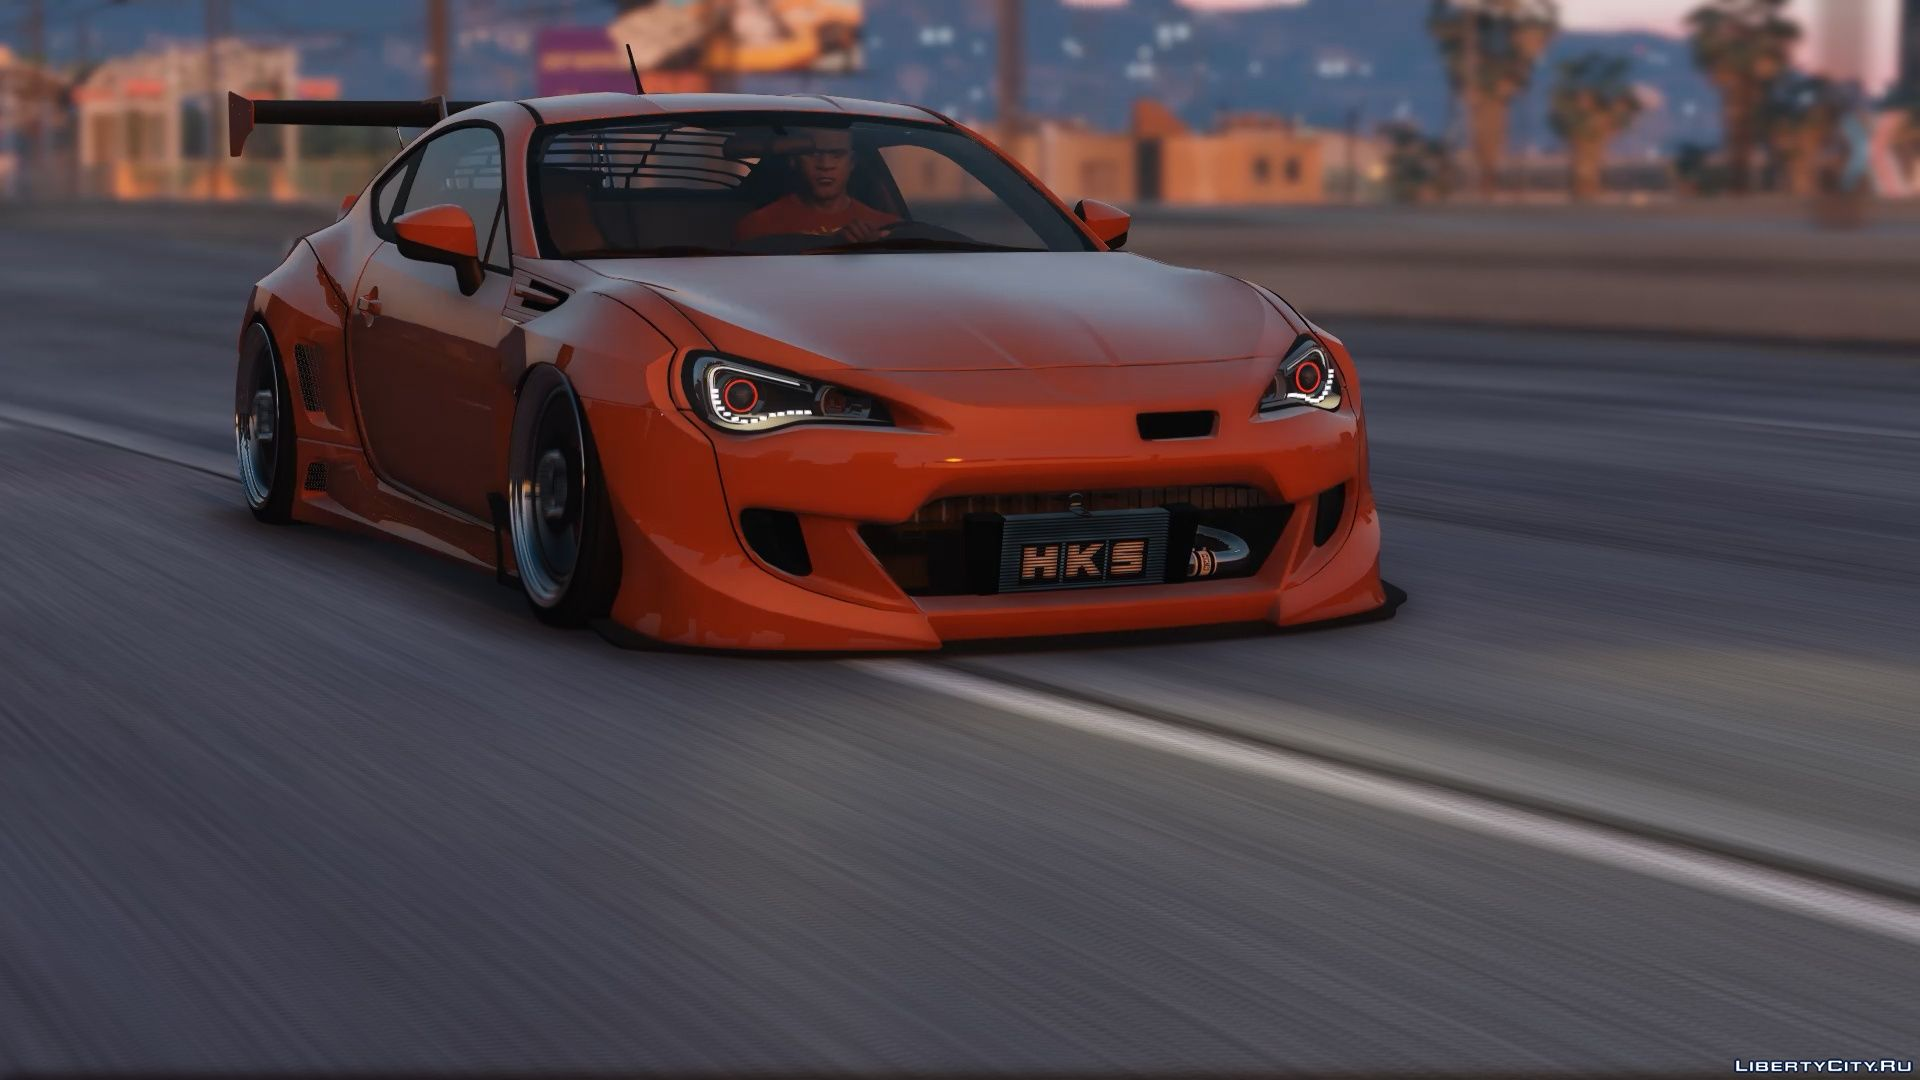 Subaru Brz Rocket Bunny V3 Add On Replace Livery 0 1 For Gta 5